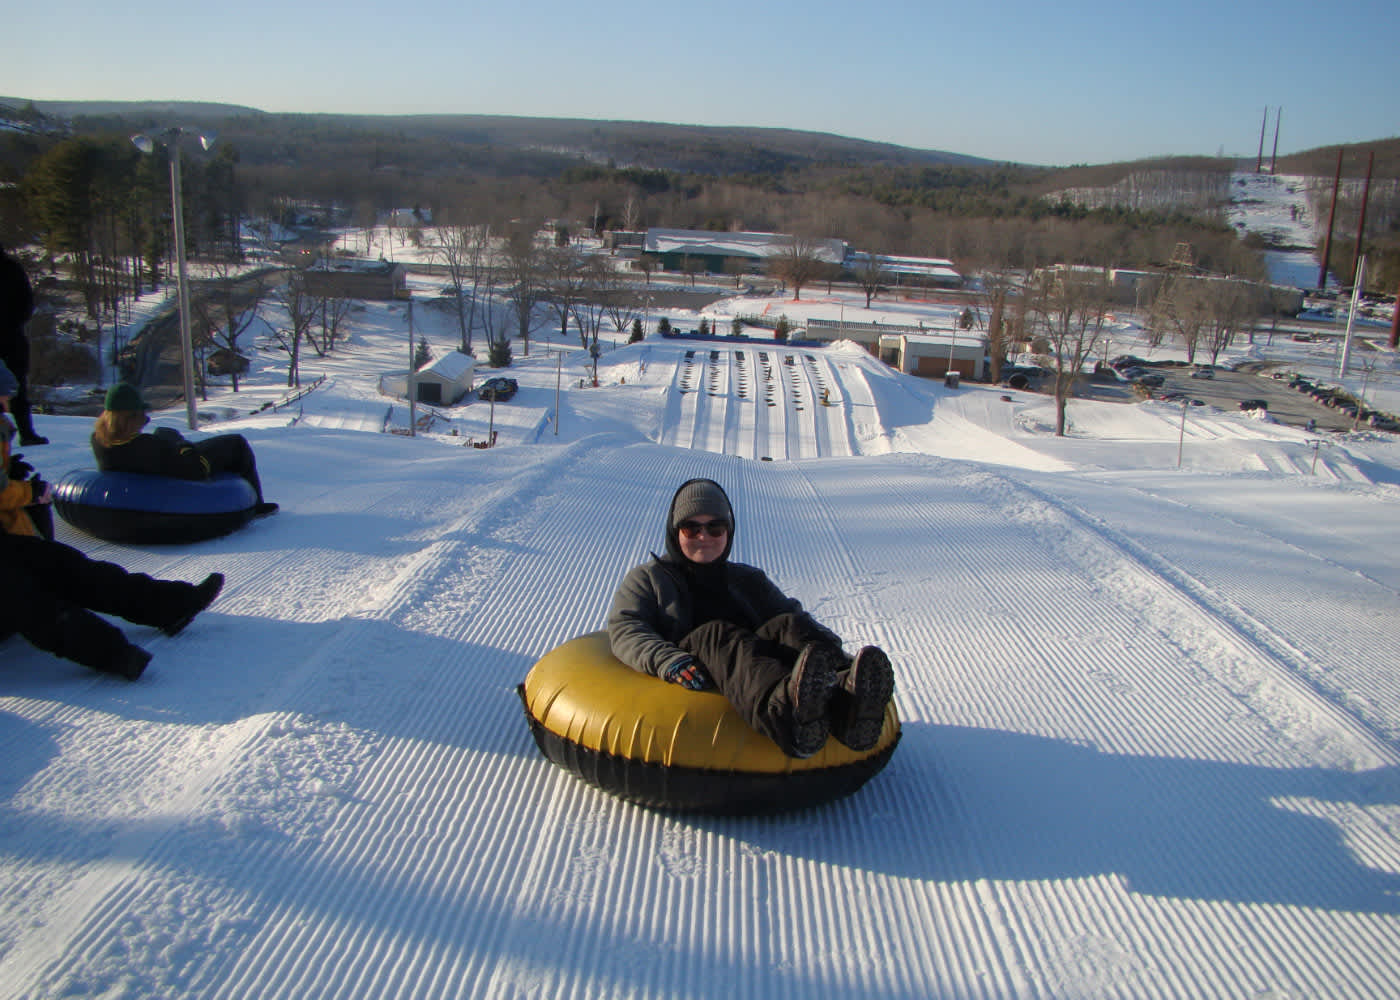 Adults snow tubing clipart graphic black and white library White Lightning Snowtubing   East Stroudsburg, PA 18302 graphic black and white library